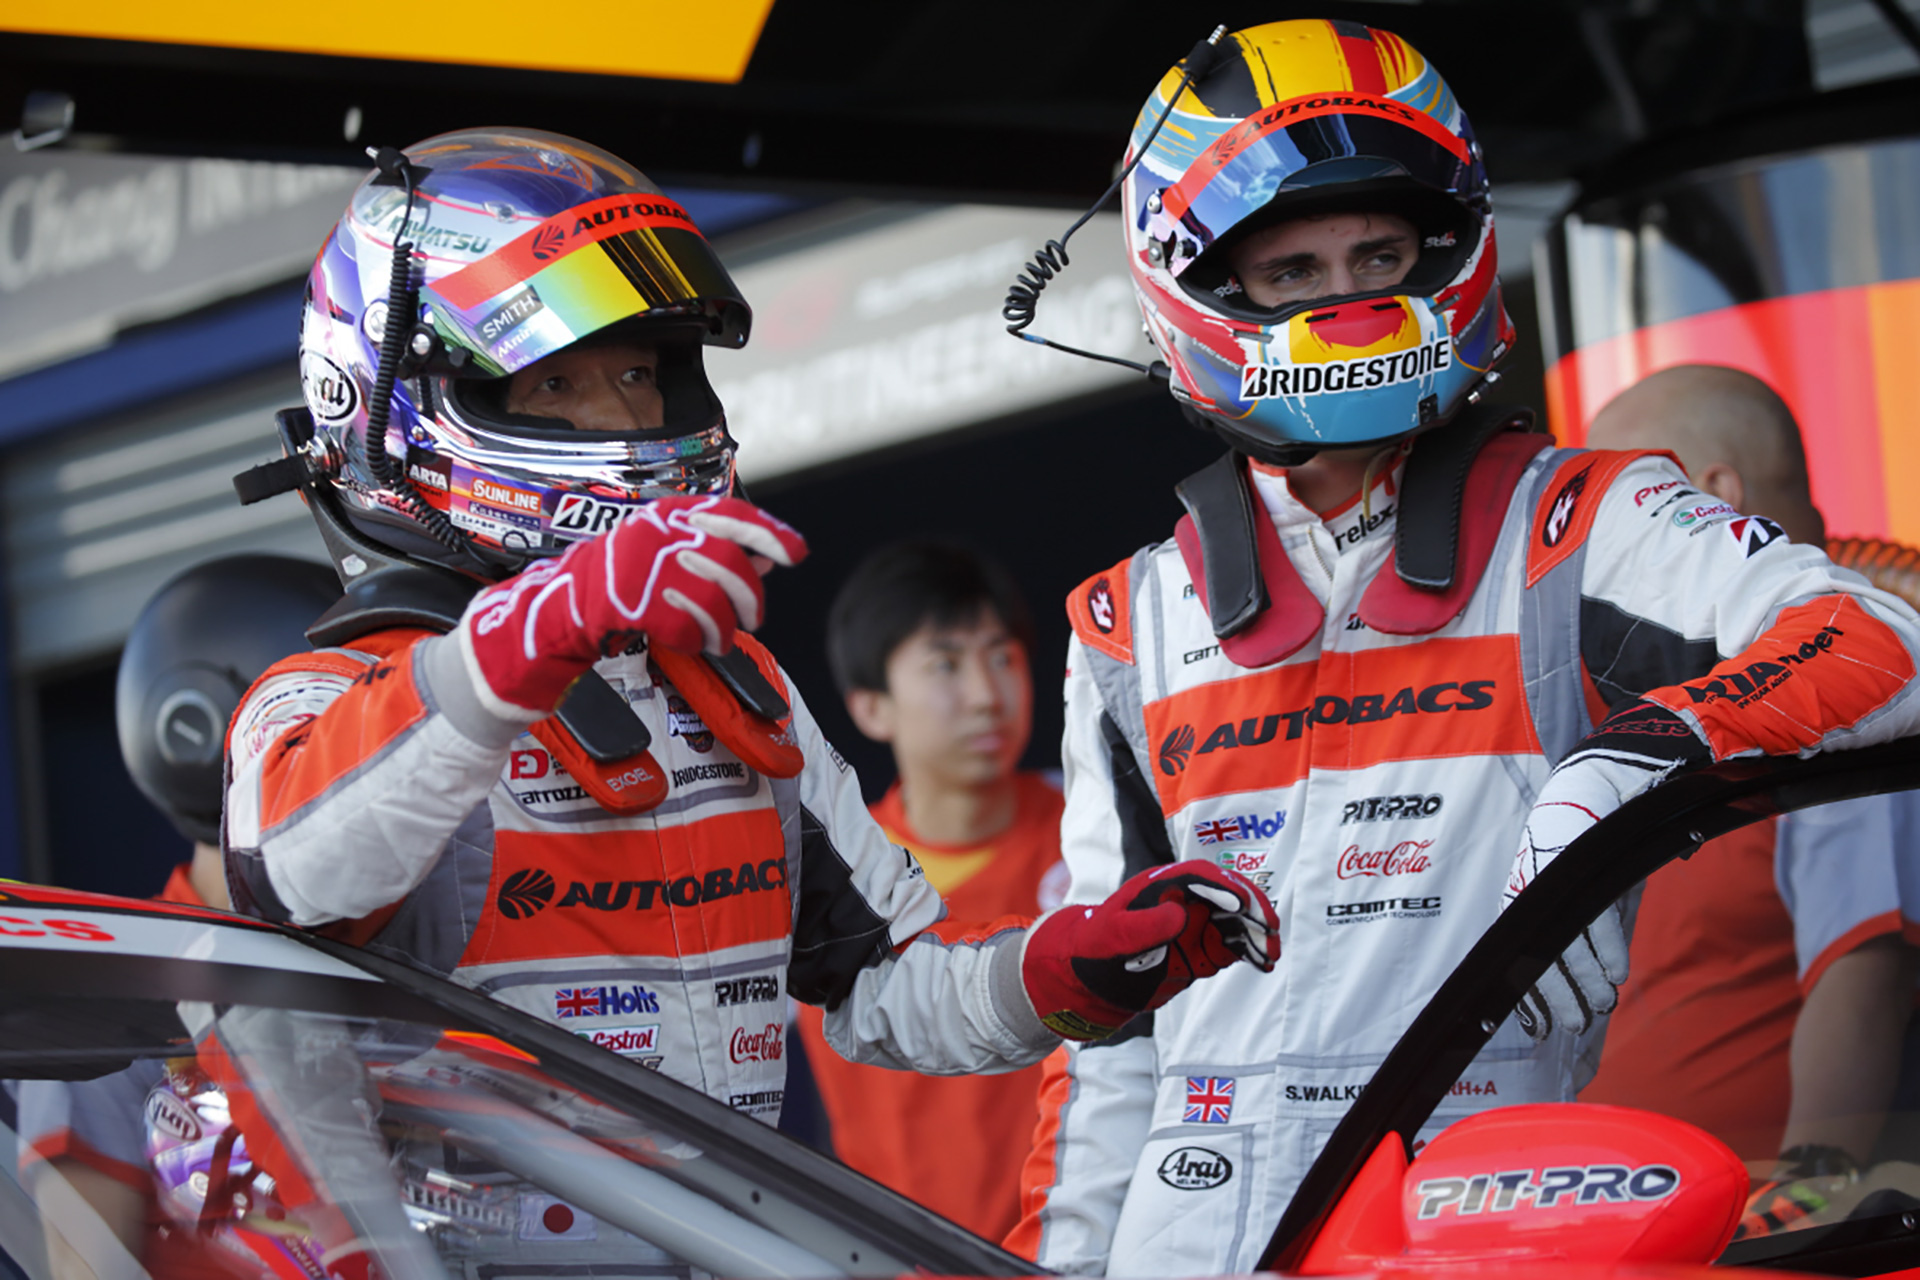 Race winner determined to get GT300 title bid off to strong start